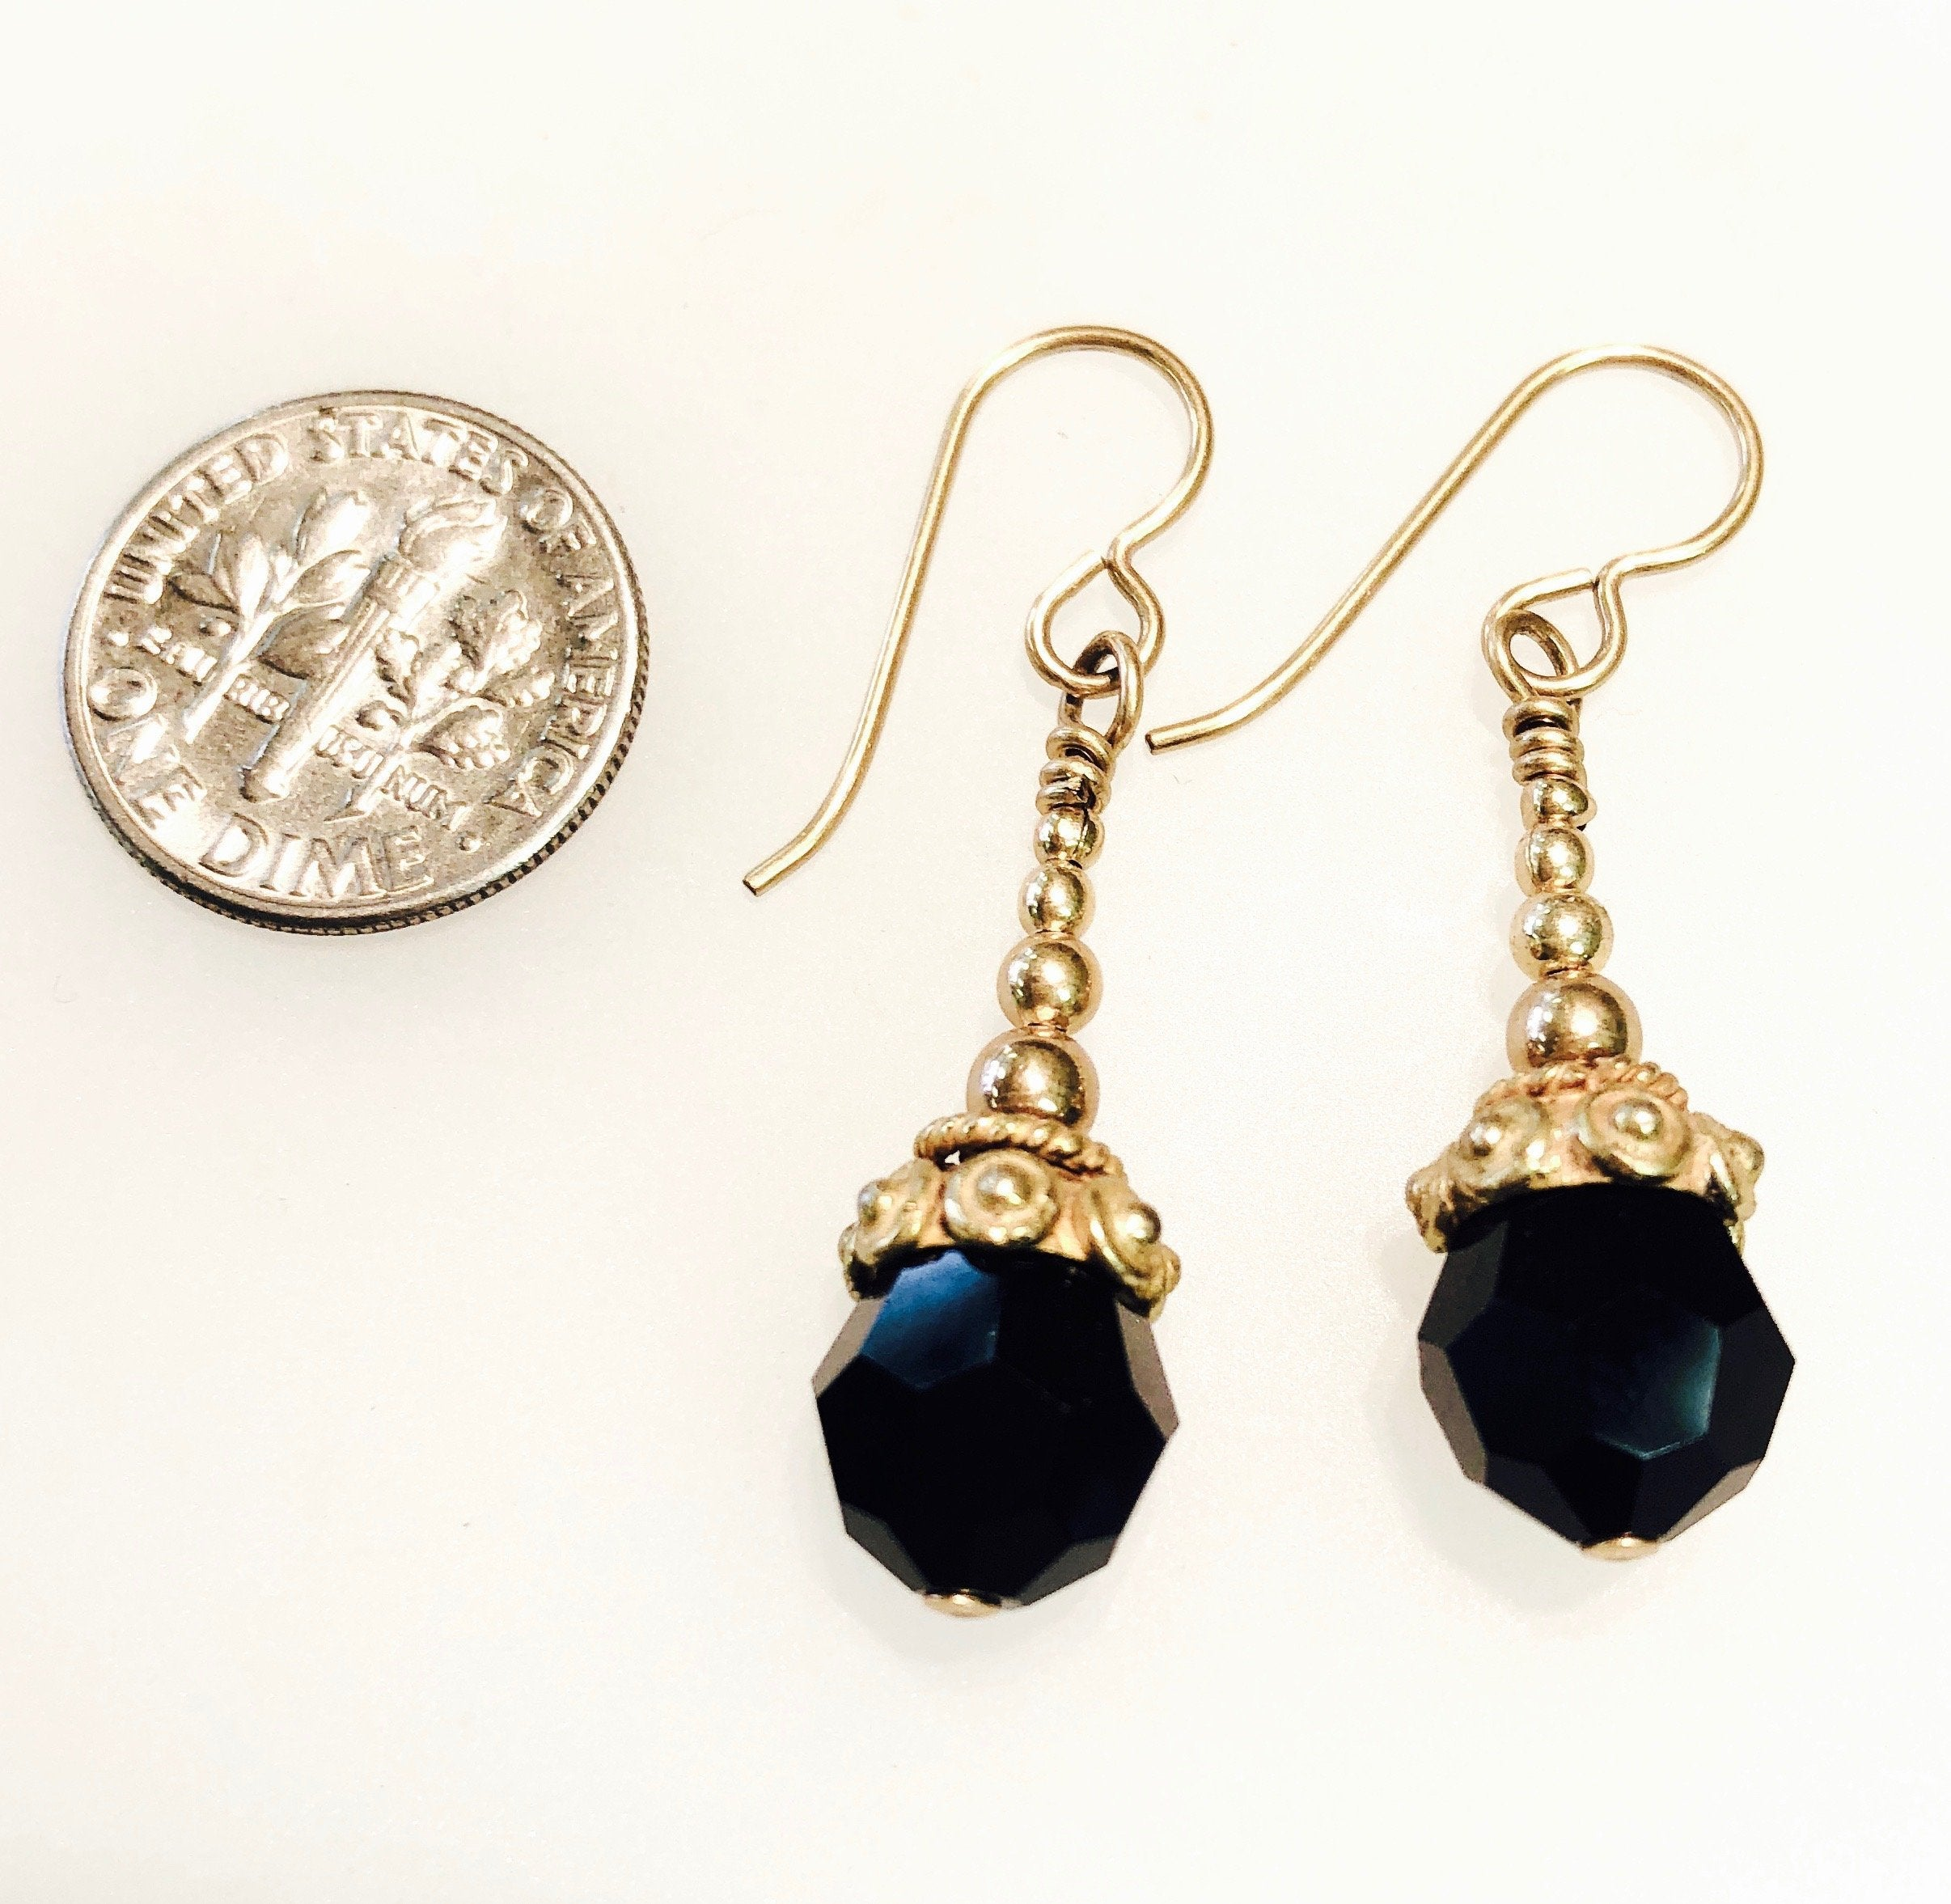 Jet Black Swarovski Earrings with Gold Fill